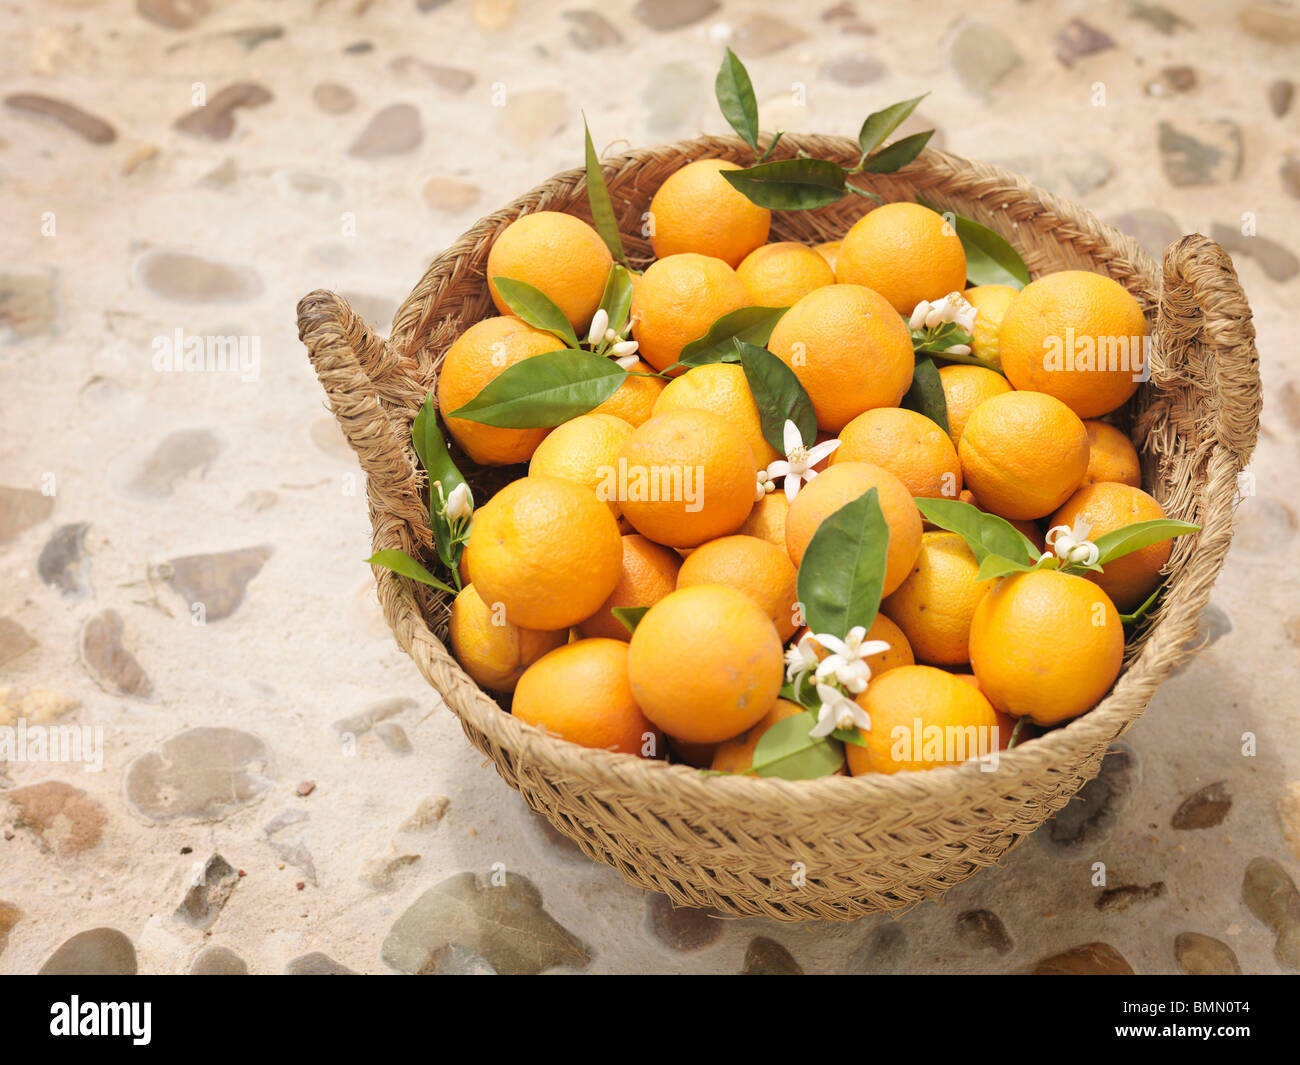 Oranges and flowers in willow basket - Stock Image